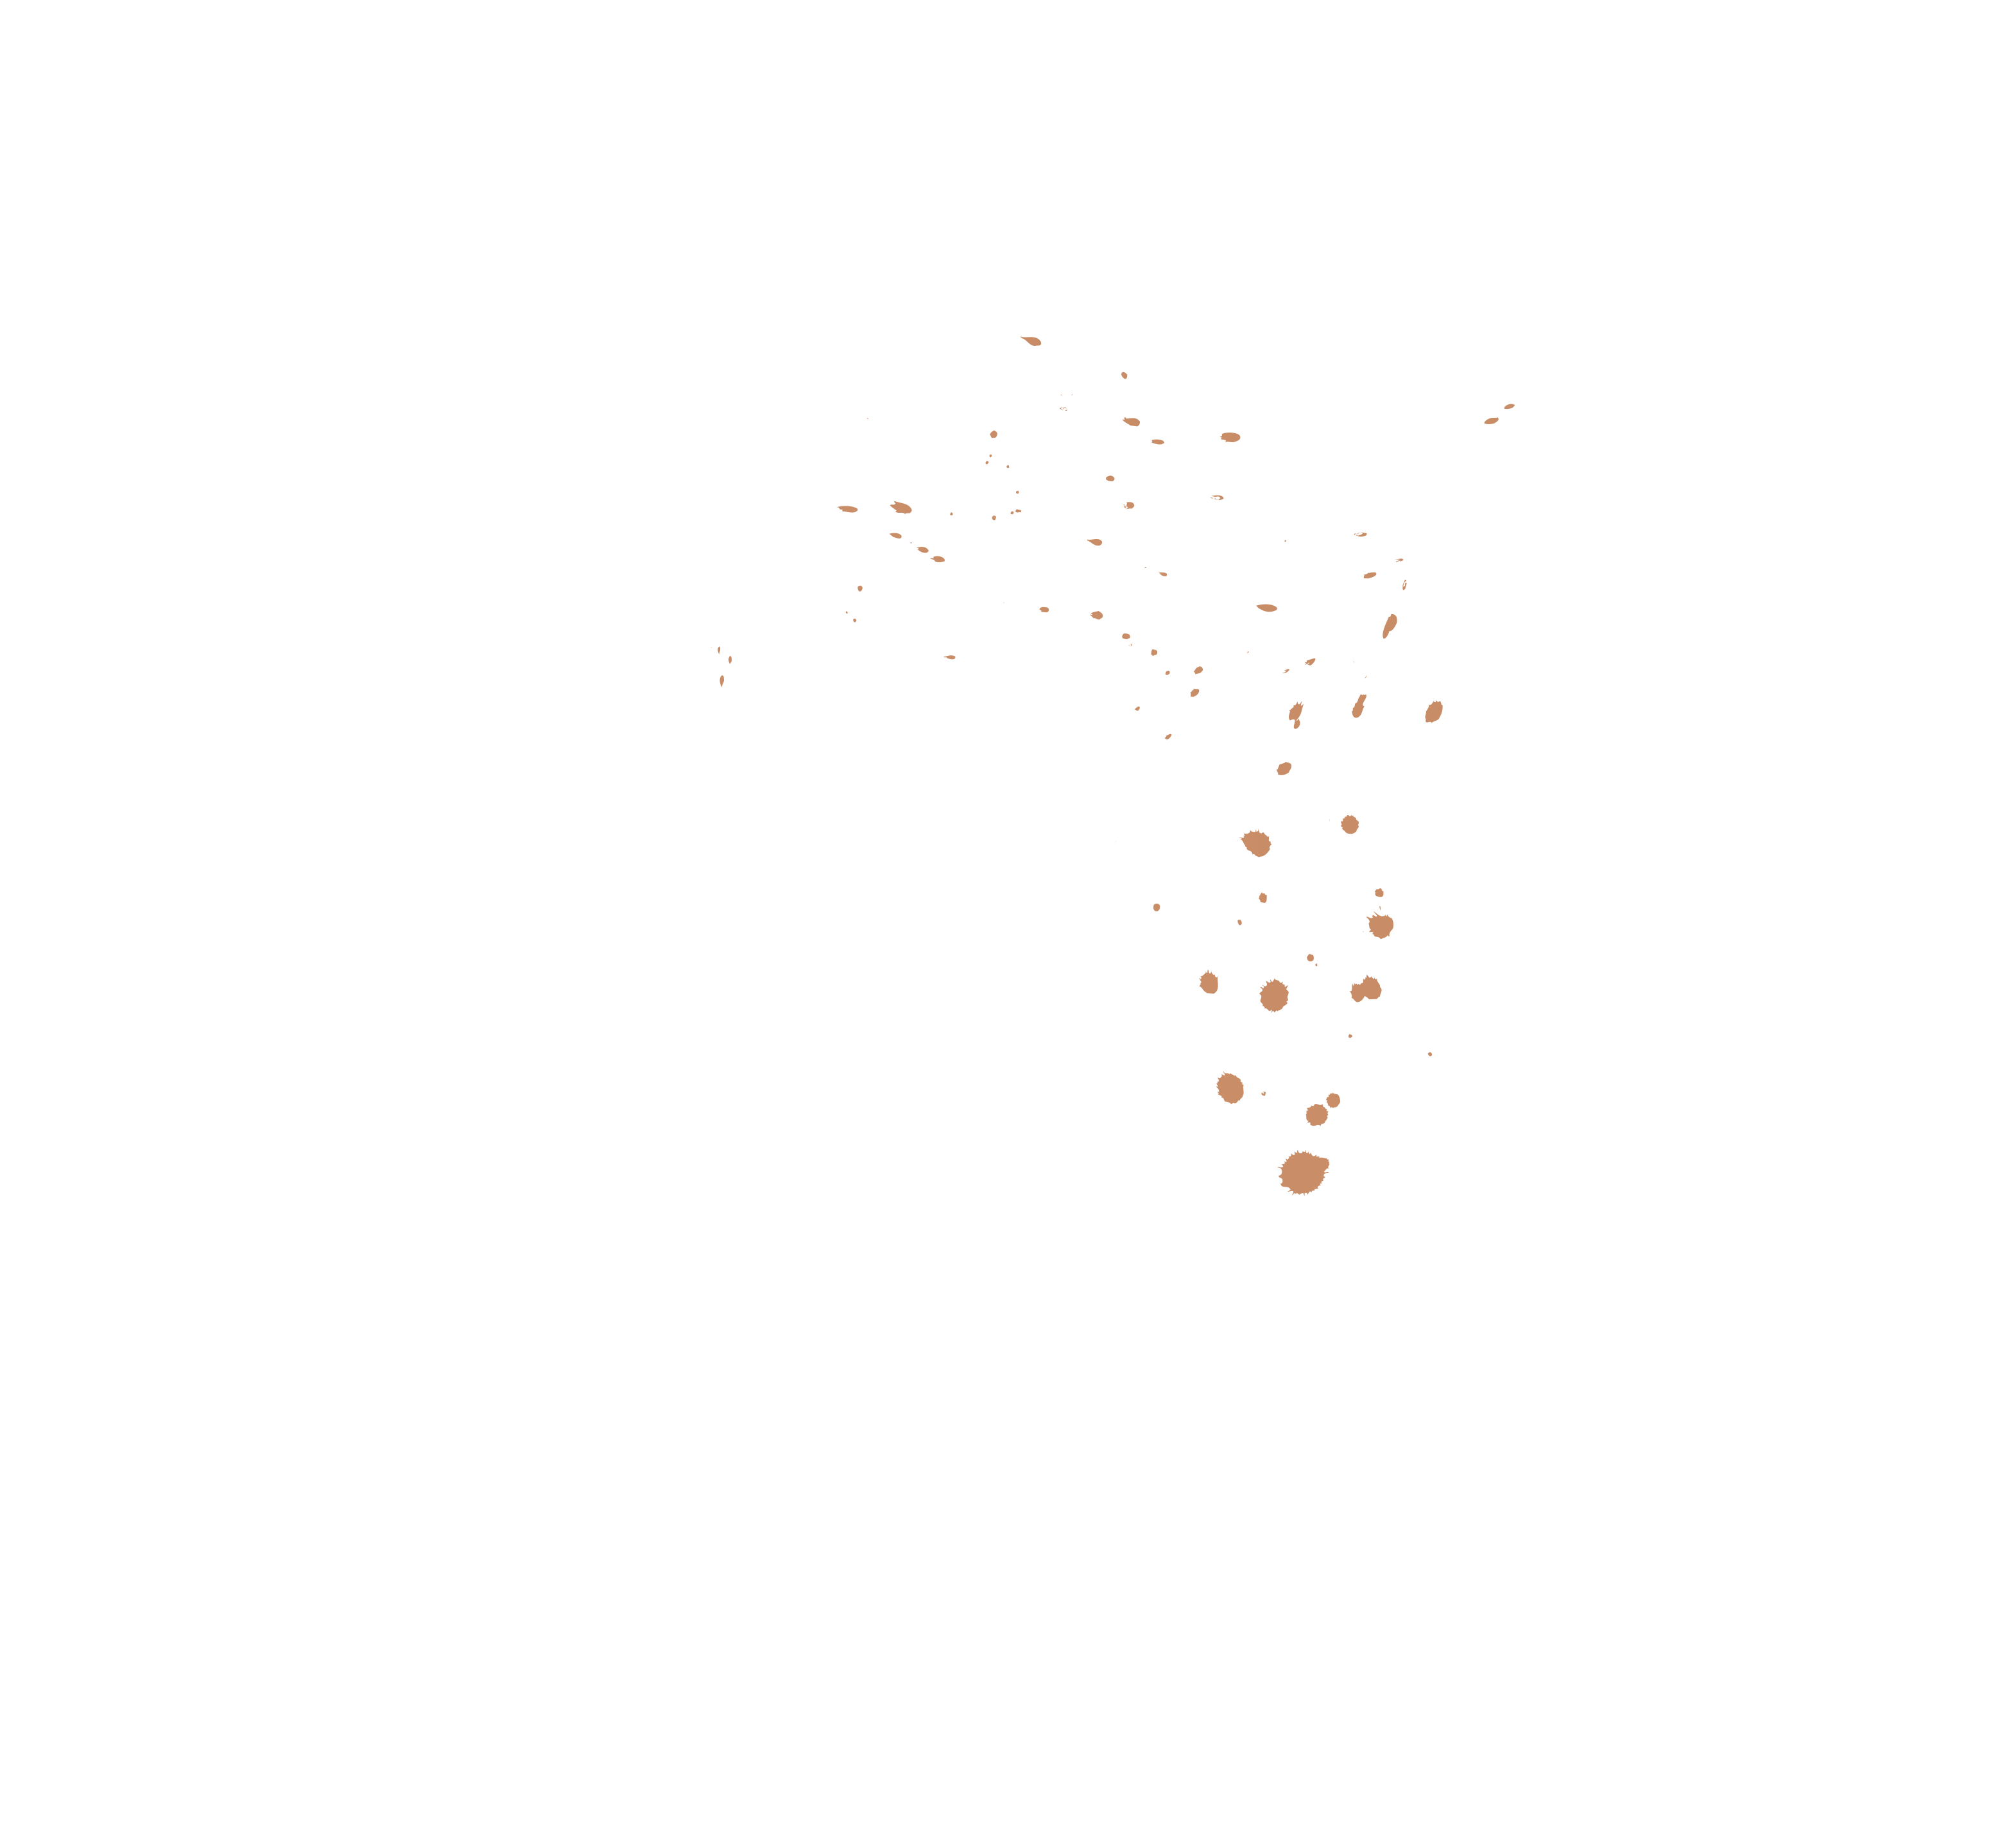 Image of the Actorium logo: an A with the work actorium written below with a small, orange paint splatter on the right